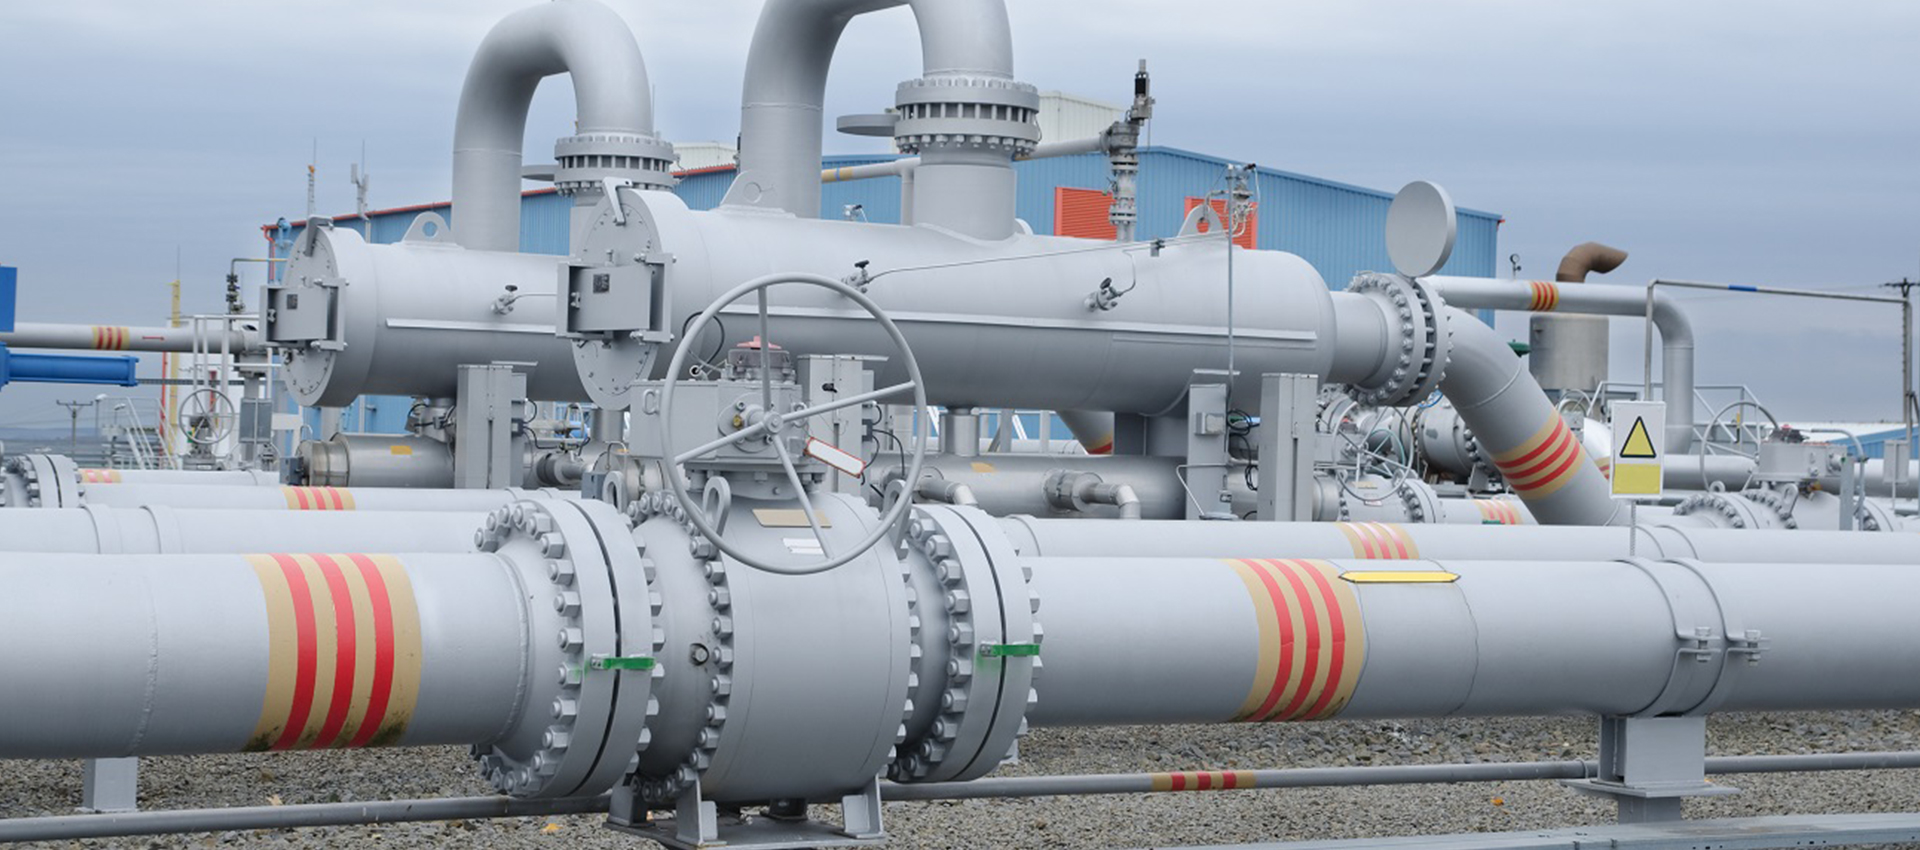 Vertical bulk gas and liquid pipelines supplied by an industrial valve manufacturer